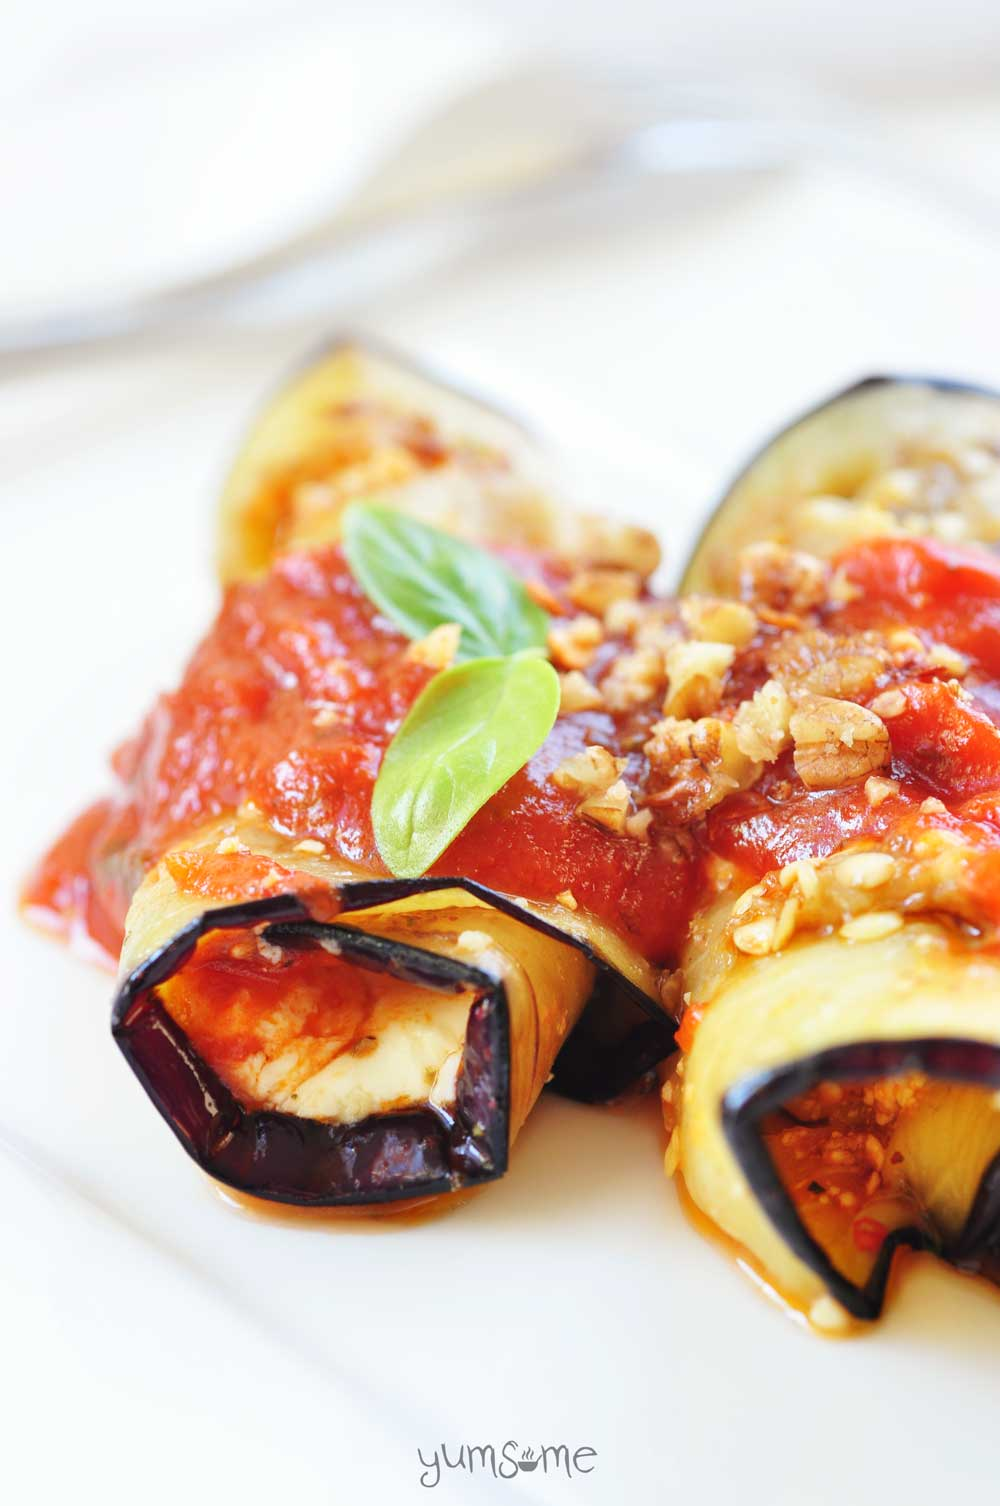 You won't go wrong with my easy vegan eggplant roll-ups - a delicious, creamy, baked combination of aubergine, spinach, tomato, and tangy vegan ricotta. | yumsome.com